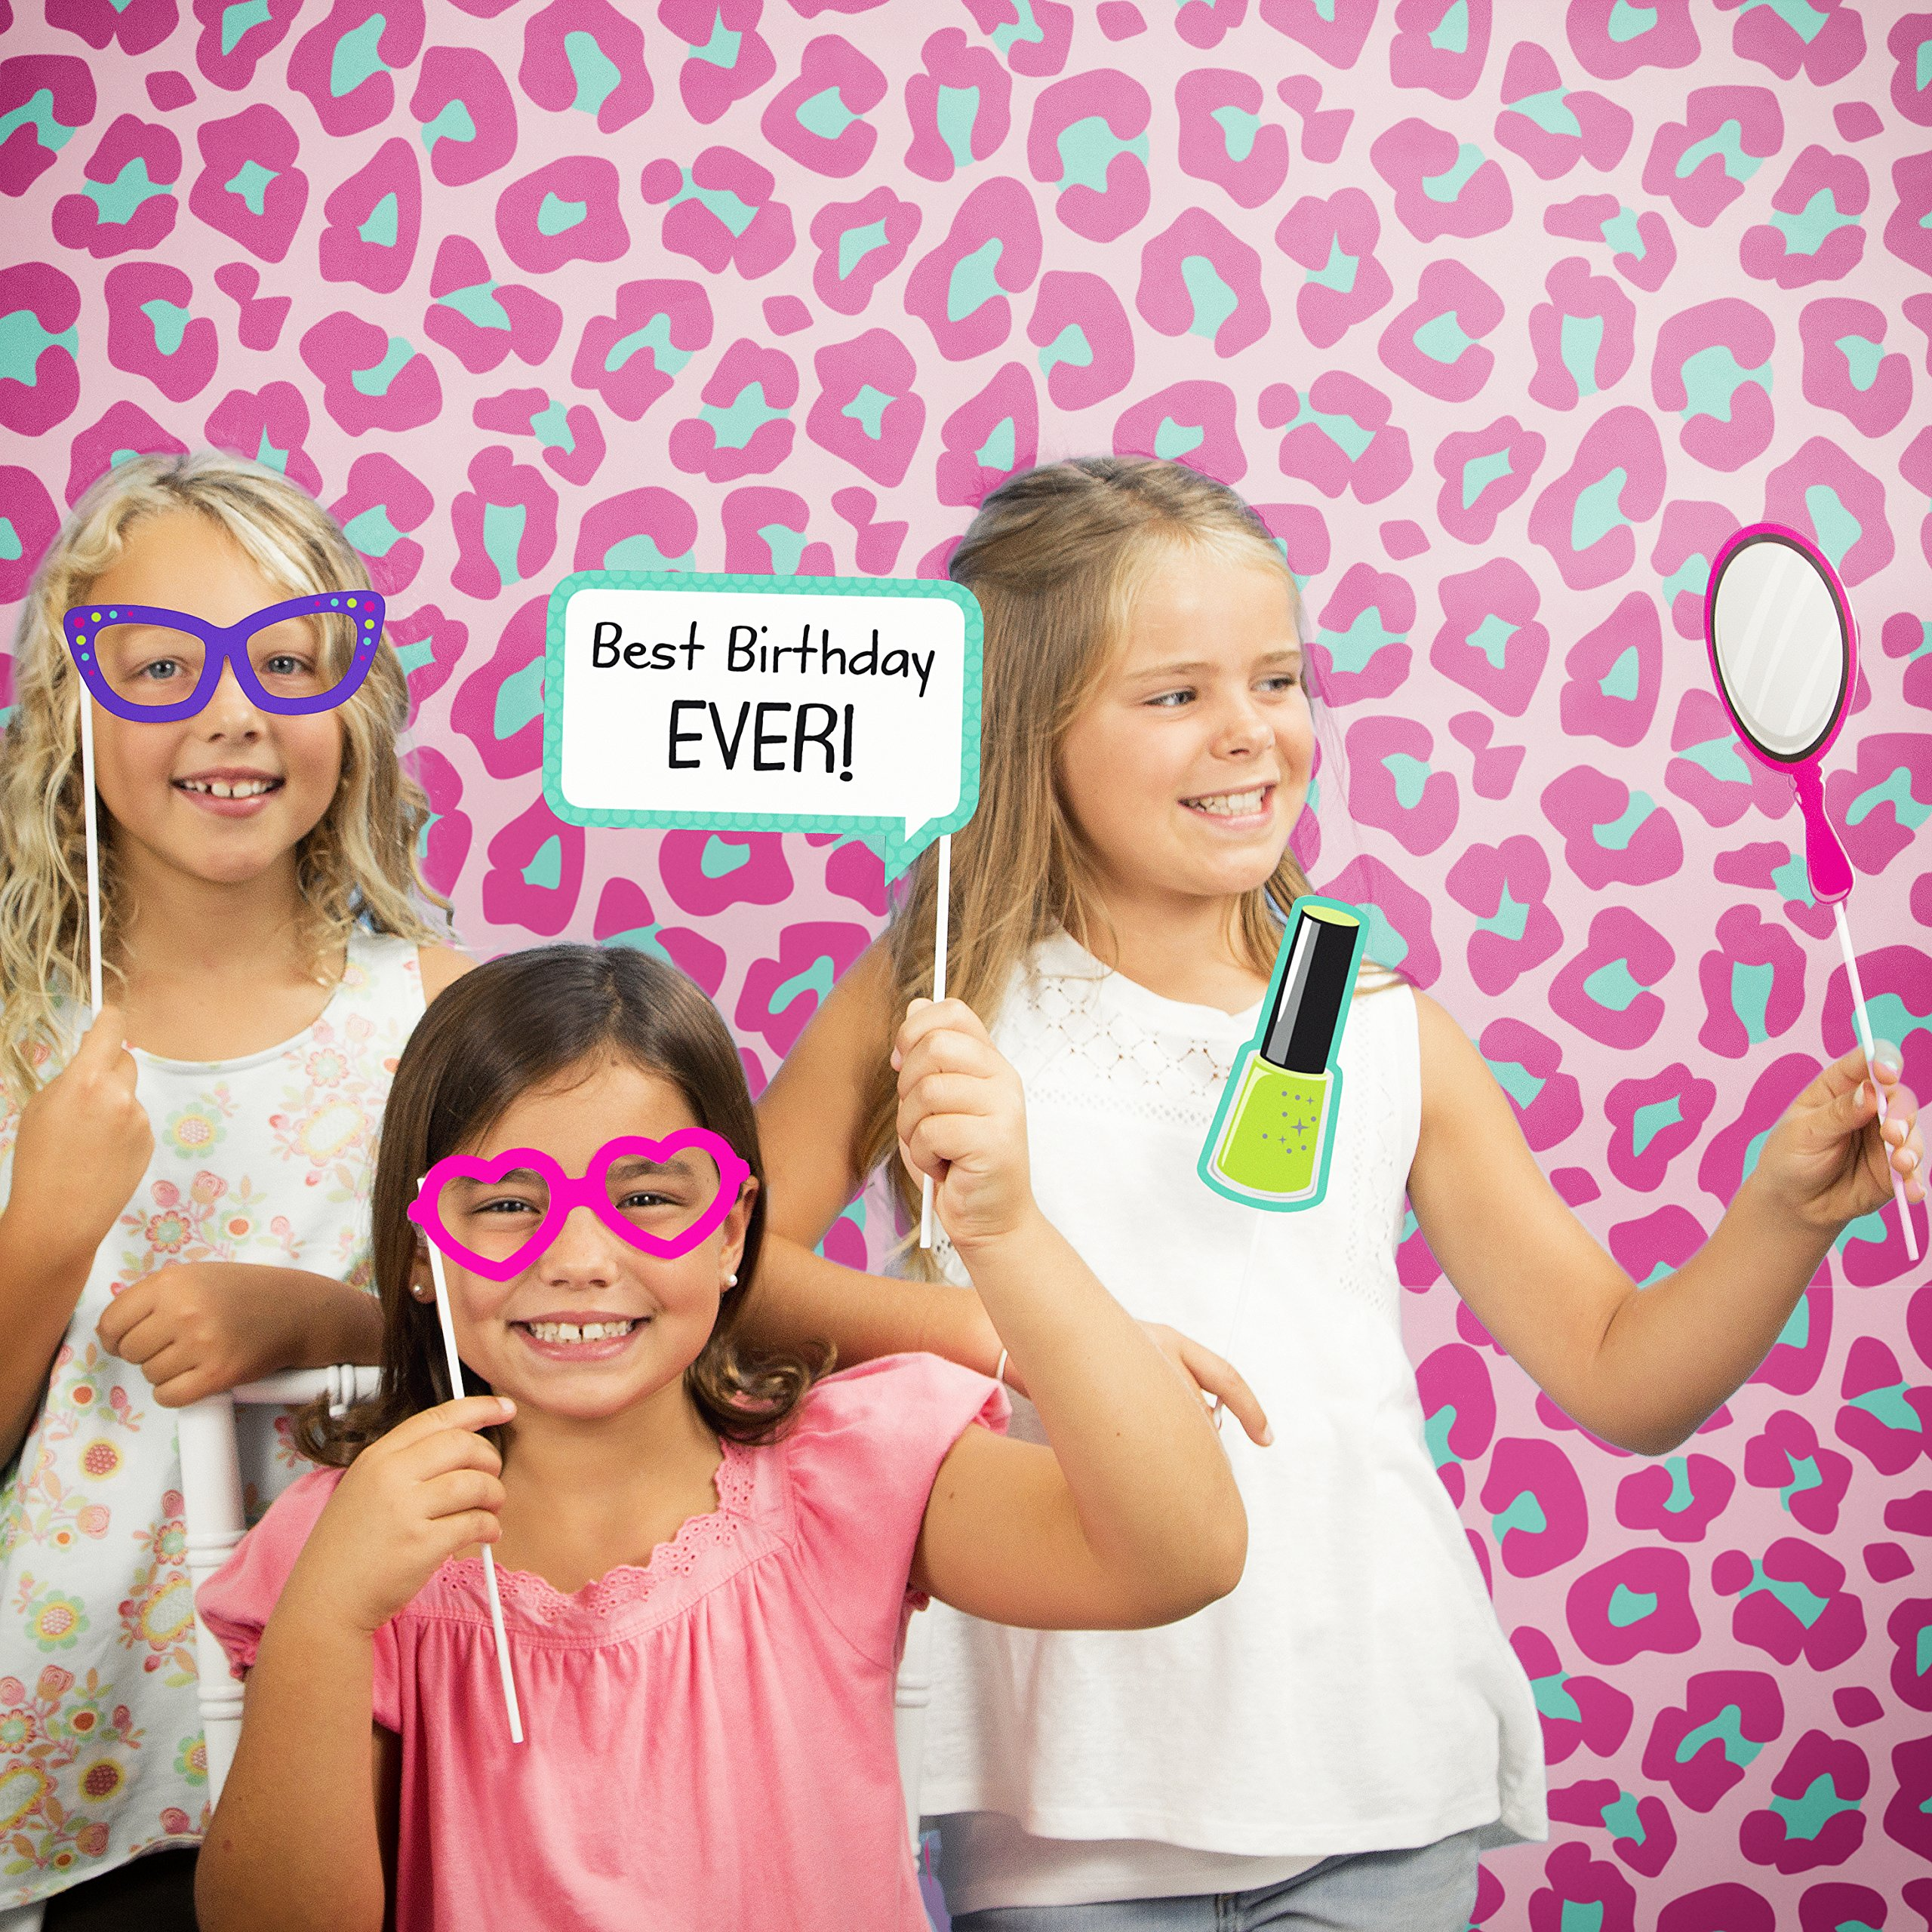 Sparkle Spa Party Photo Booth Kit by Creative Converting (Image #1)